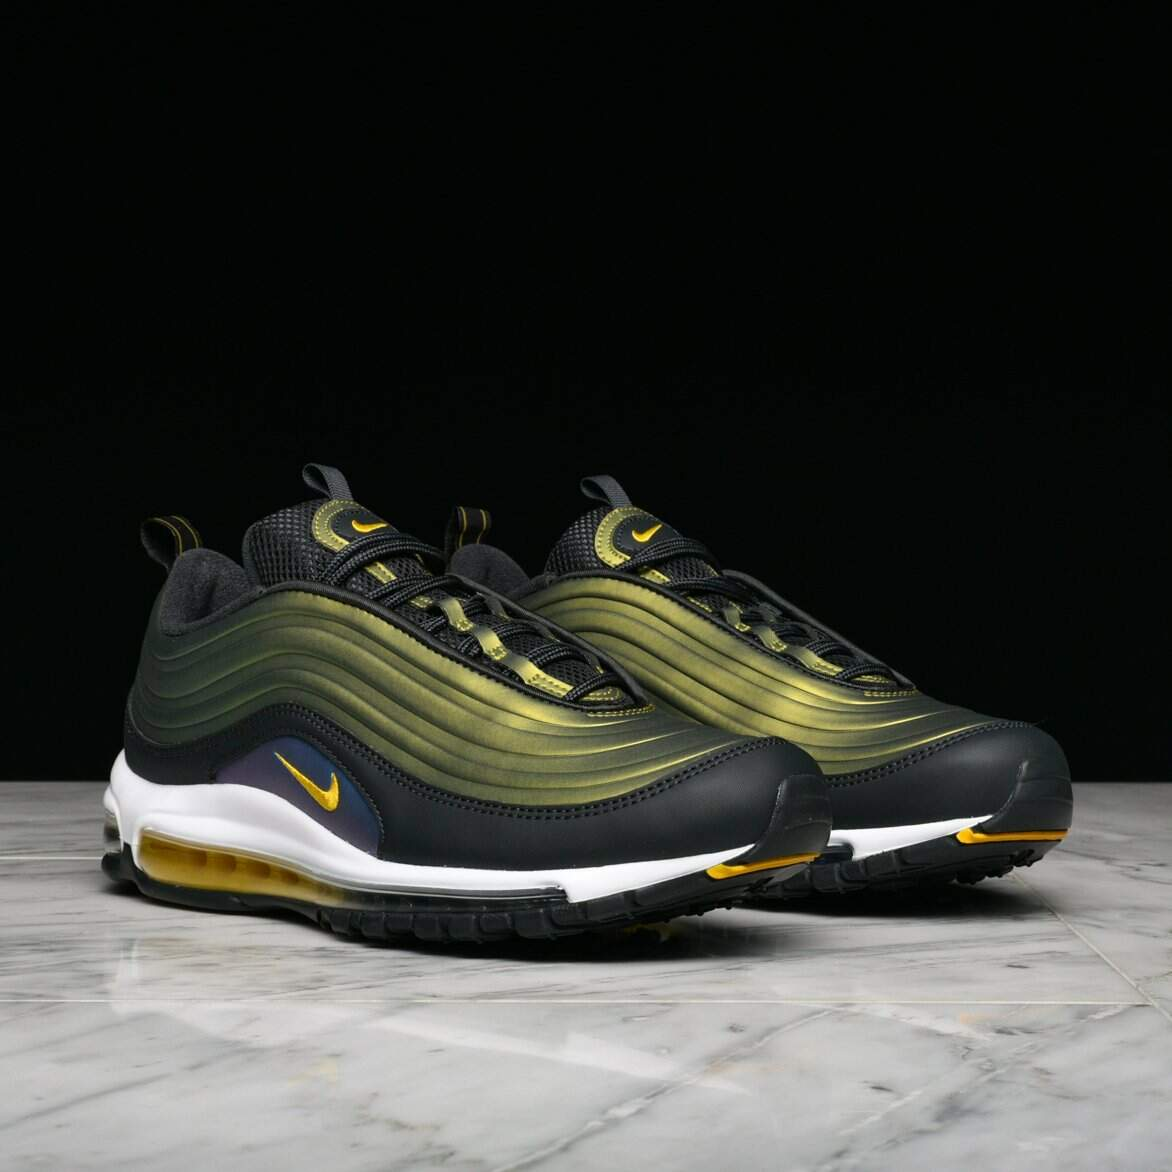 Air Max 97 LX Anthracite / Amarillo Masculino